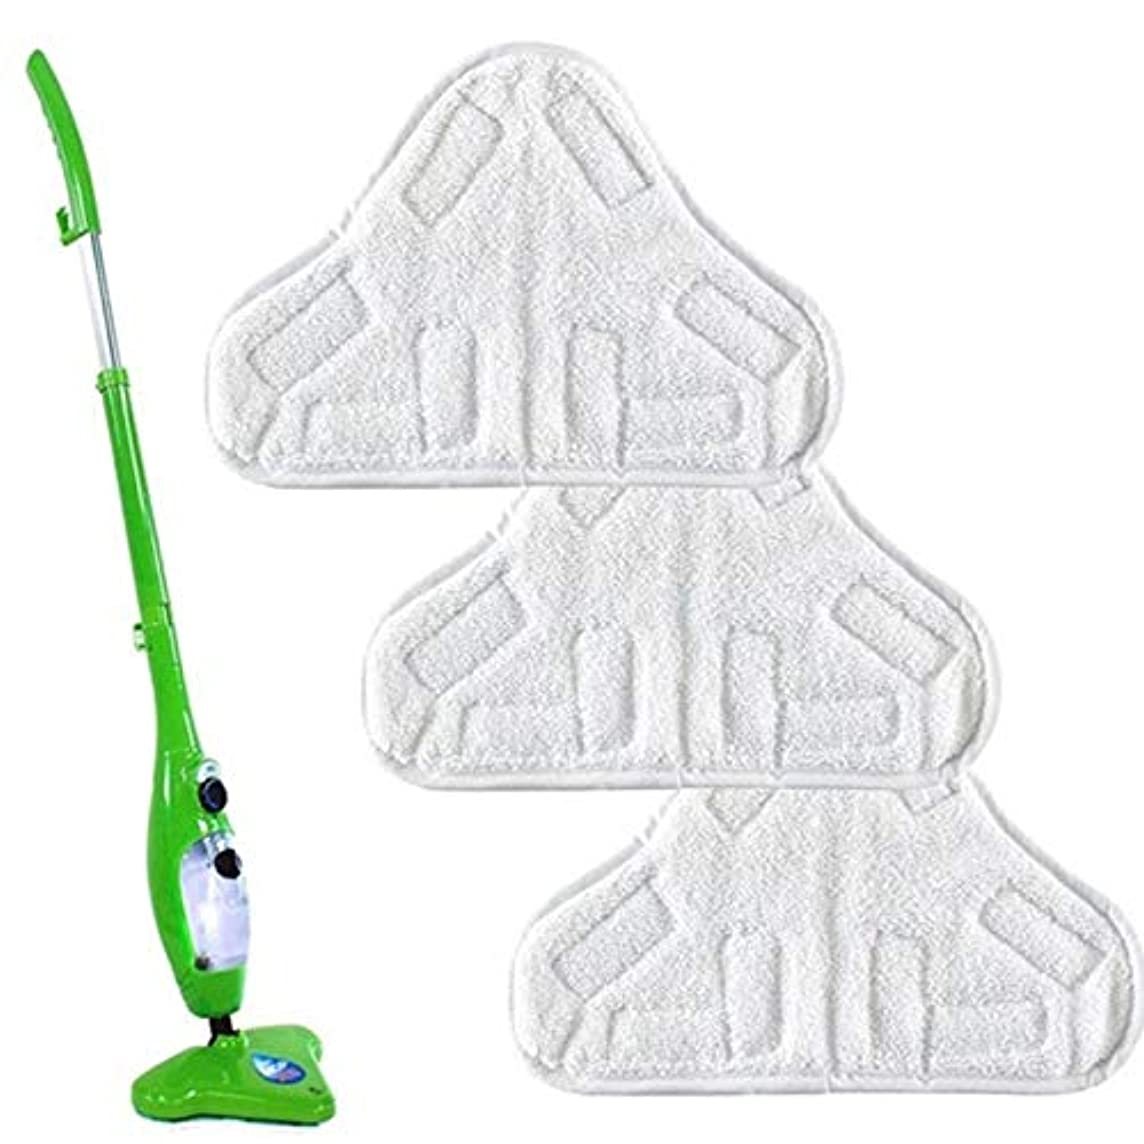 Cleaning Cloths - 1pcs H2o X5 Model Steam Mop Replacement Pad Clean Washable Cloth Microfiber Head In Reusable - Absorbent Bulk Disposable Silver Norwex Cloths Washable Cellulose Free Electronic